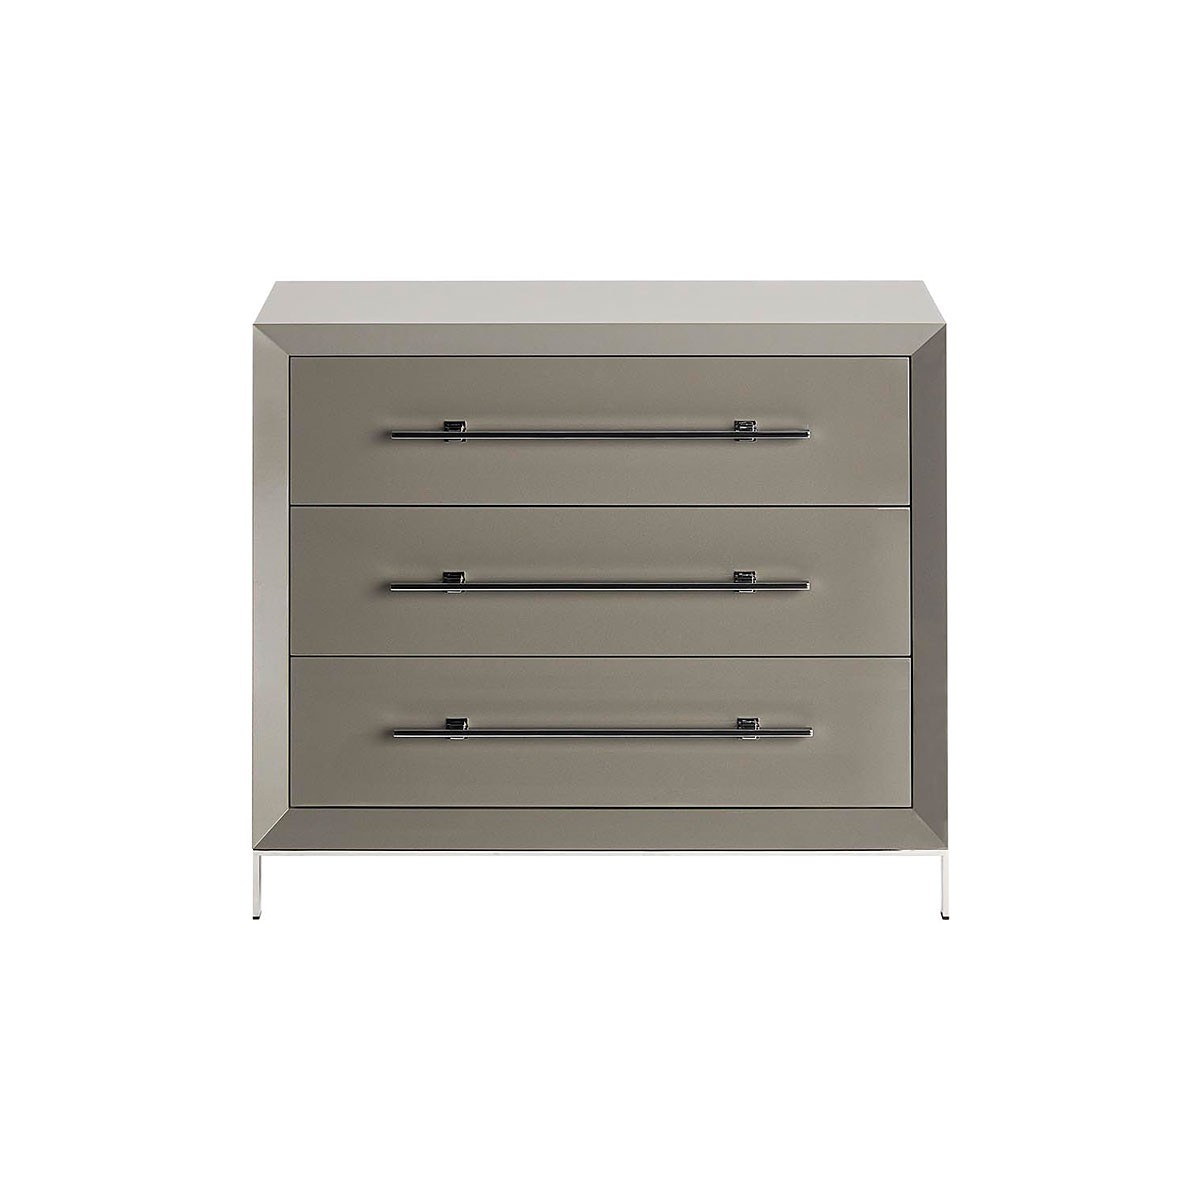 The Magna Chest of Drawers